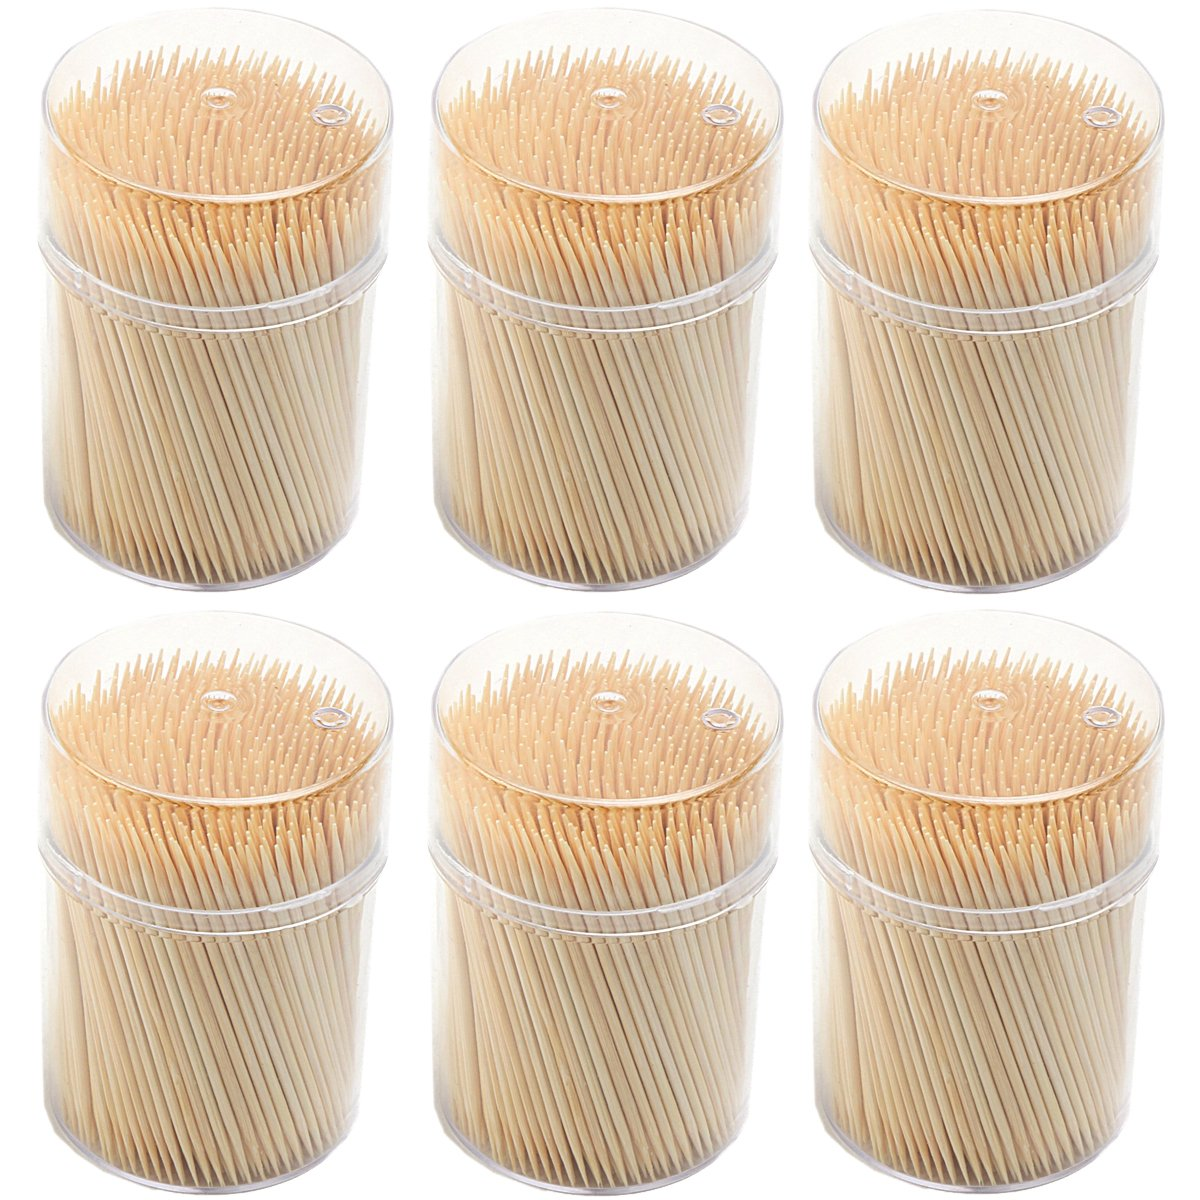 Natural Wooden Toothpicks 3000 Count - Long Strong Round Splinter-Free Bamboo Wood for Quick and Easy Tooth Cleaning | 6 Dispensers/500 pcs Each by My Trendy Kitchen